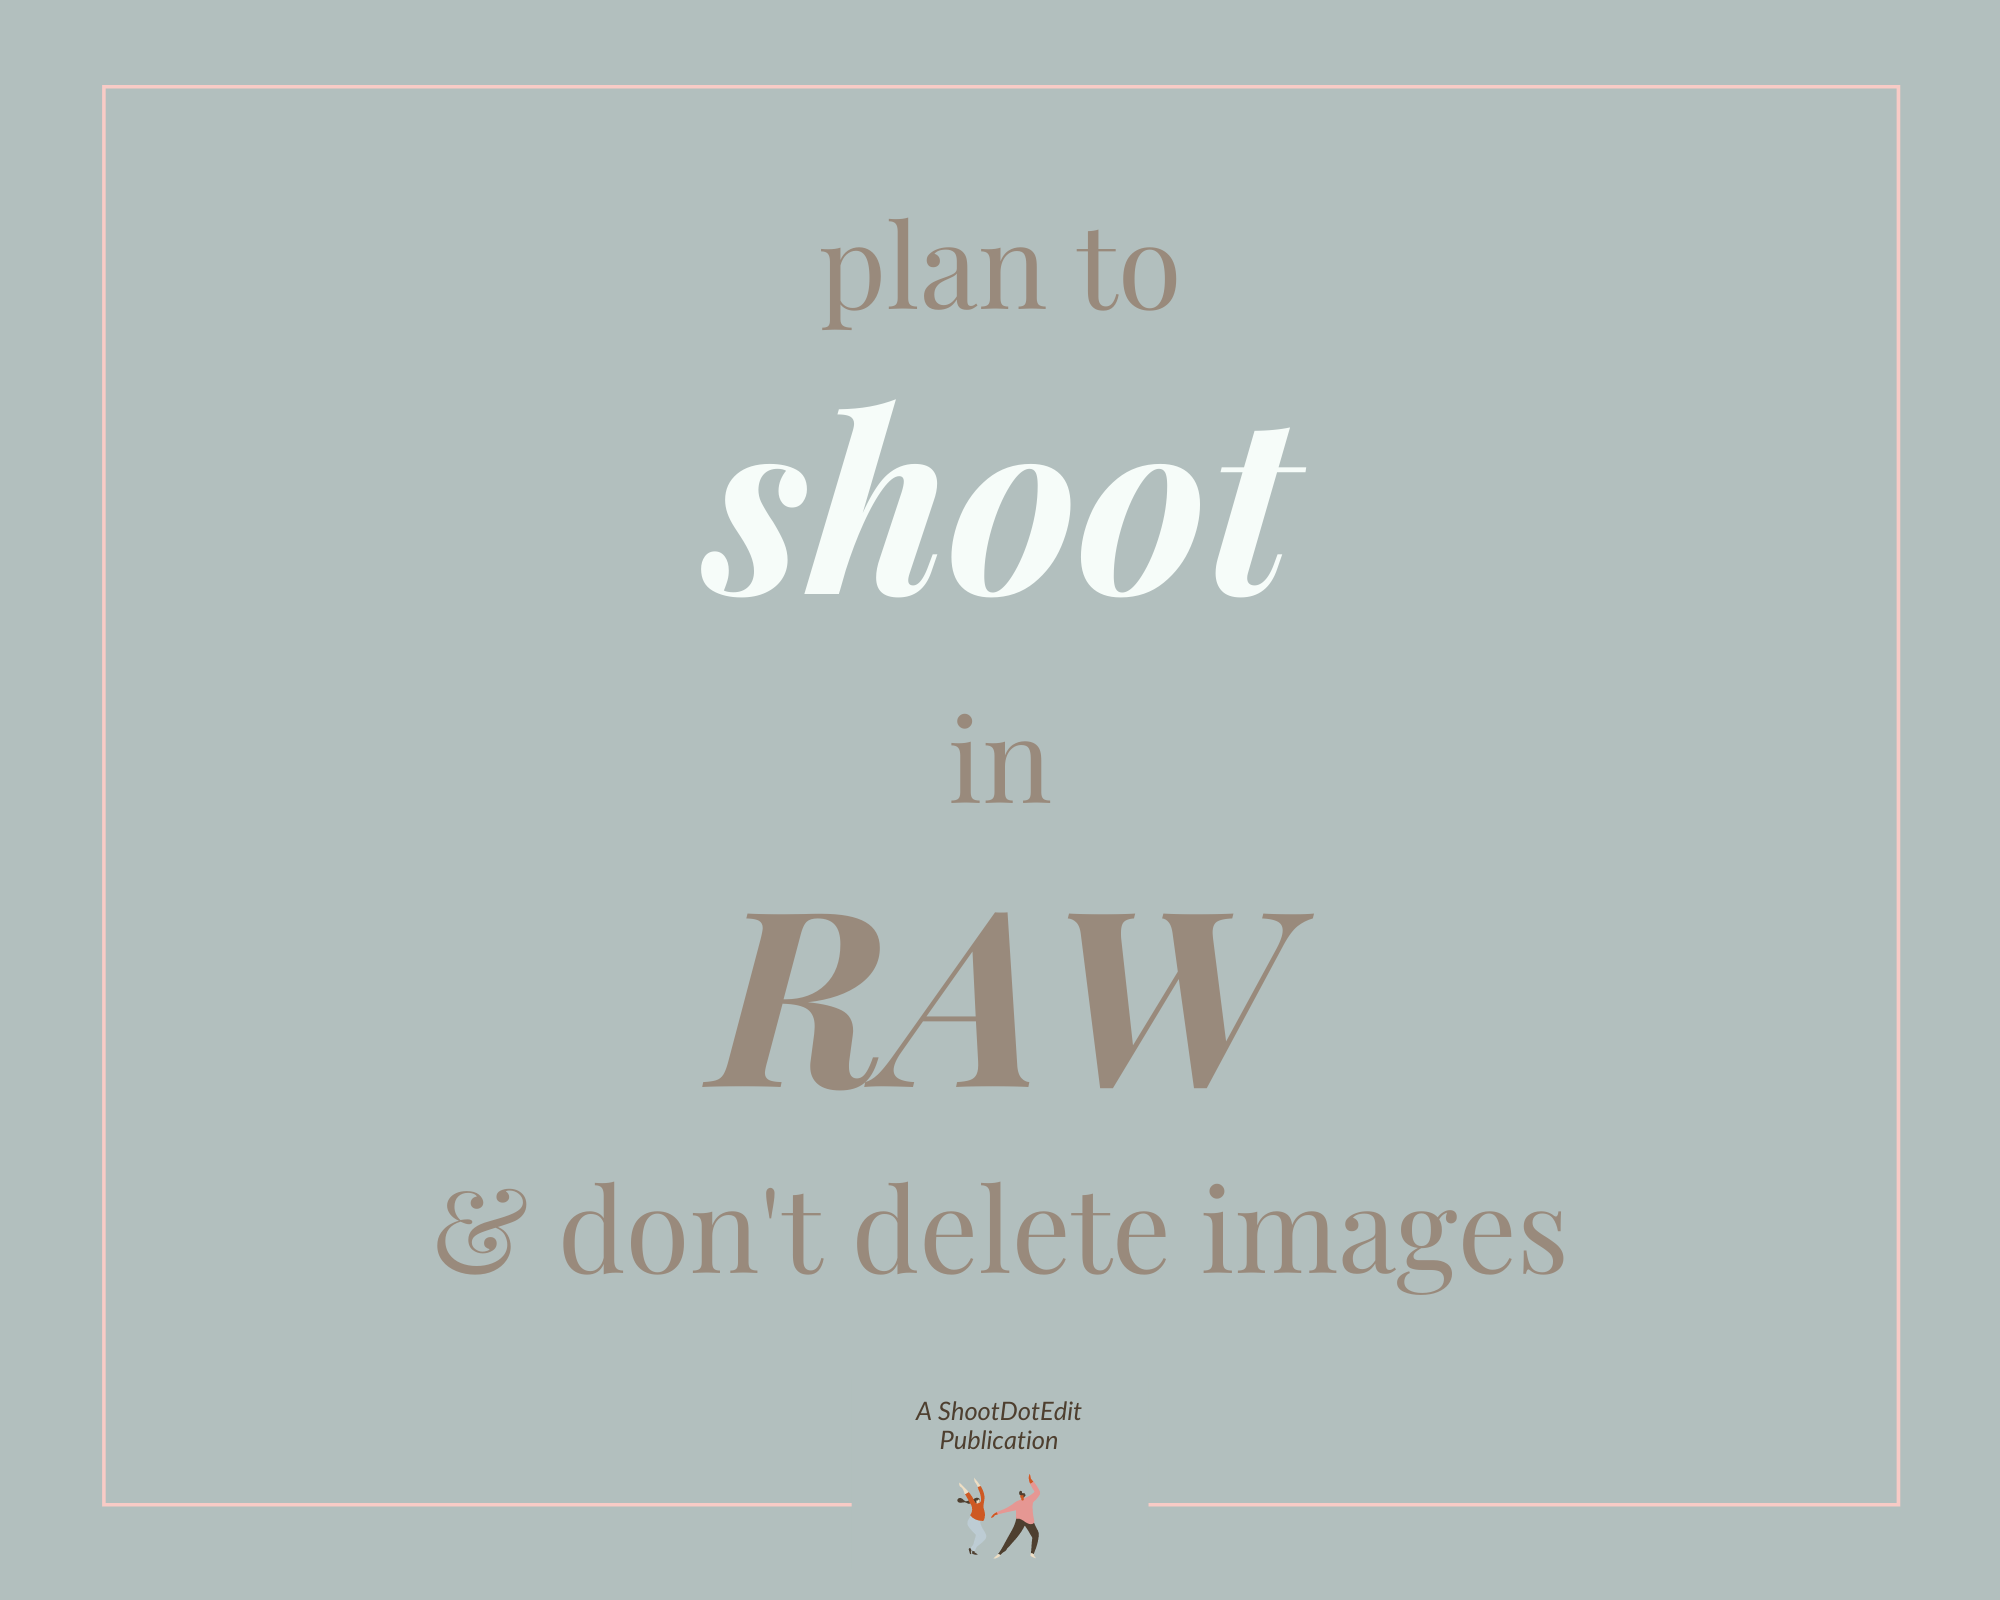 Infographic stating plan to shoot in RAW and don't delete images